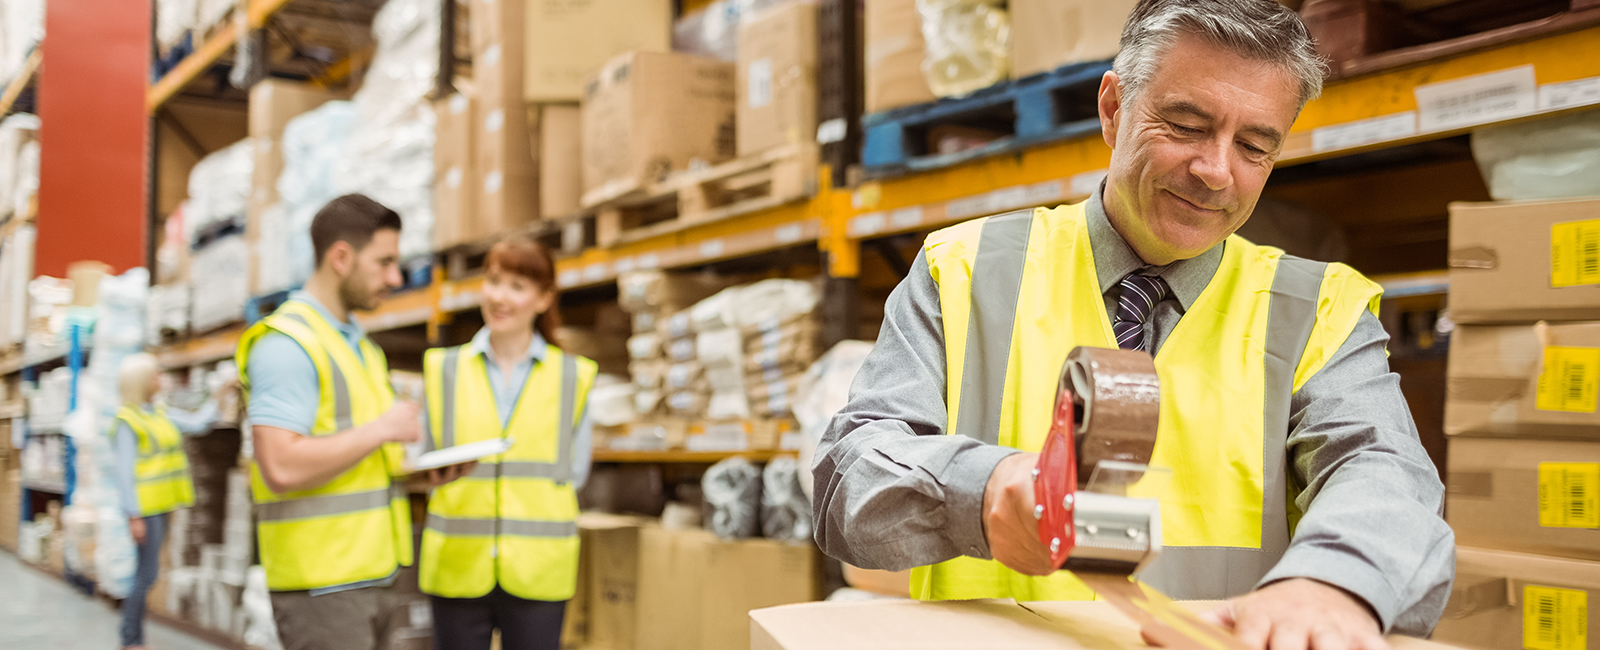 SAP Ariba helps with supplier managed inventory